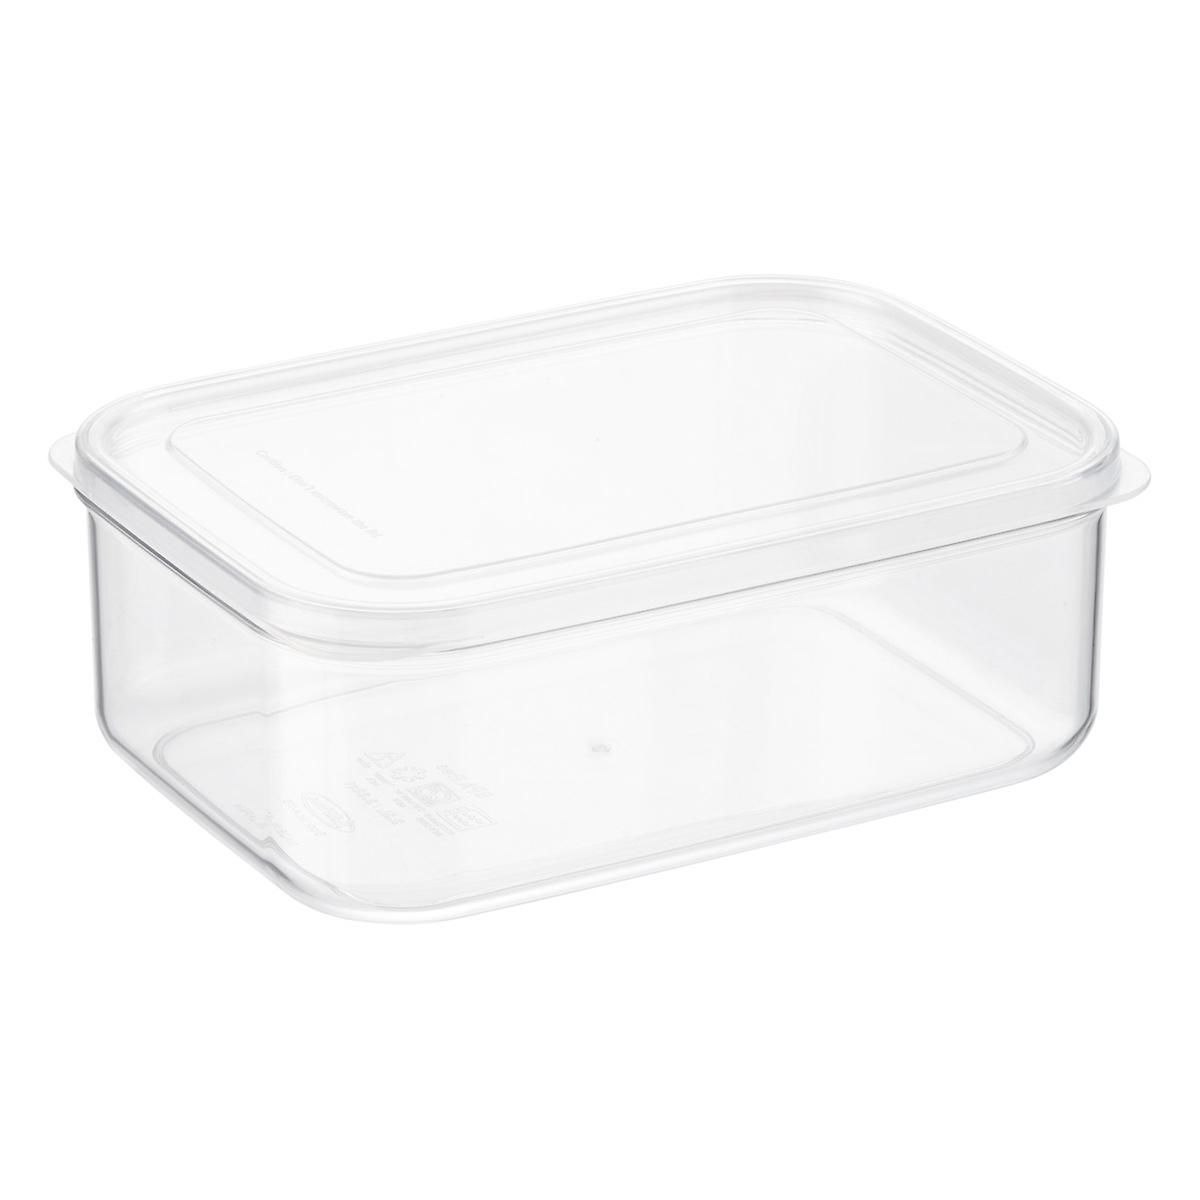 Crystal Clear Rectangular Food Storage The Container Store